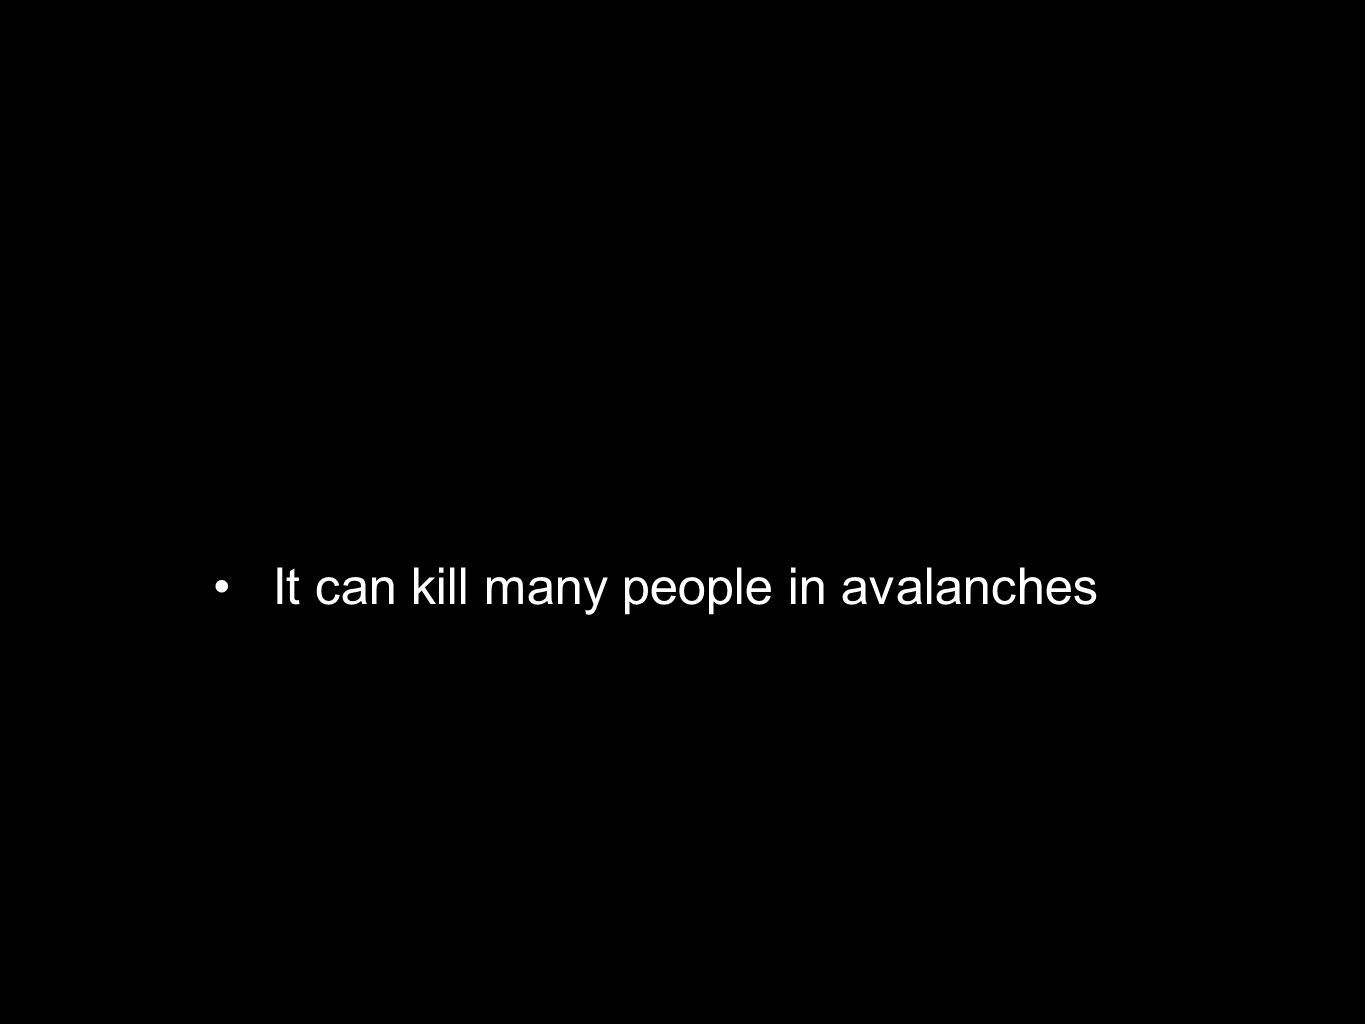 It can kill many people in avalanches